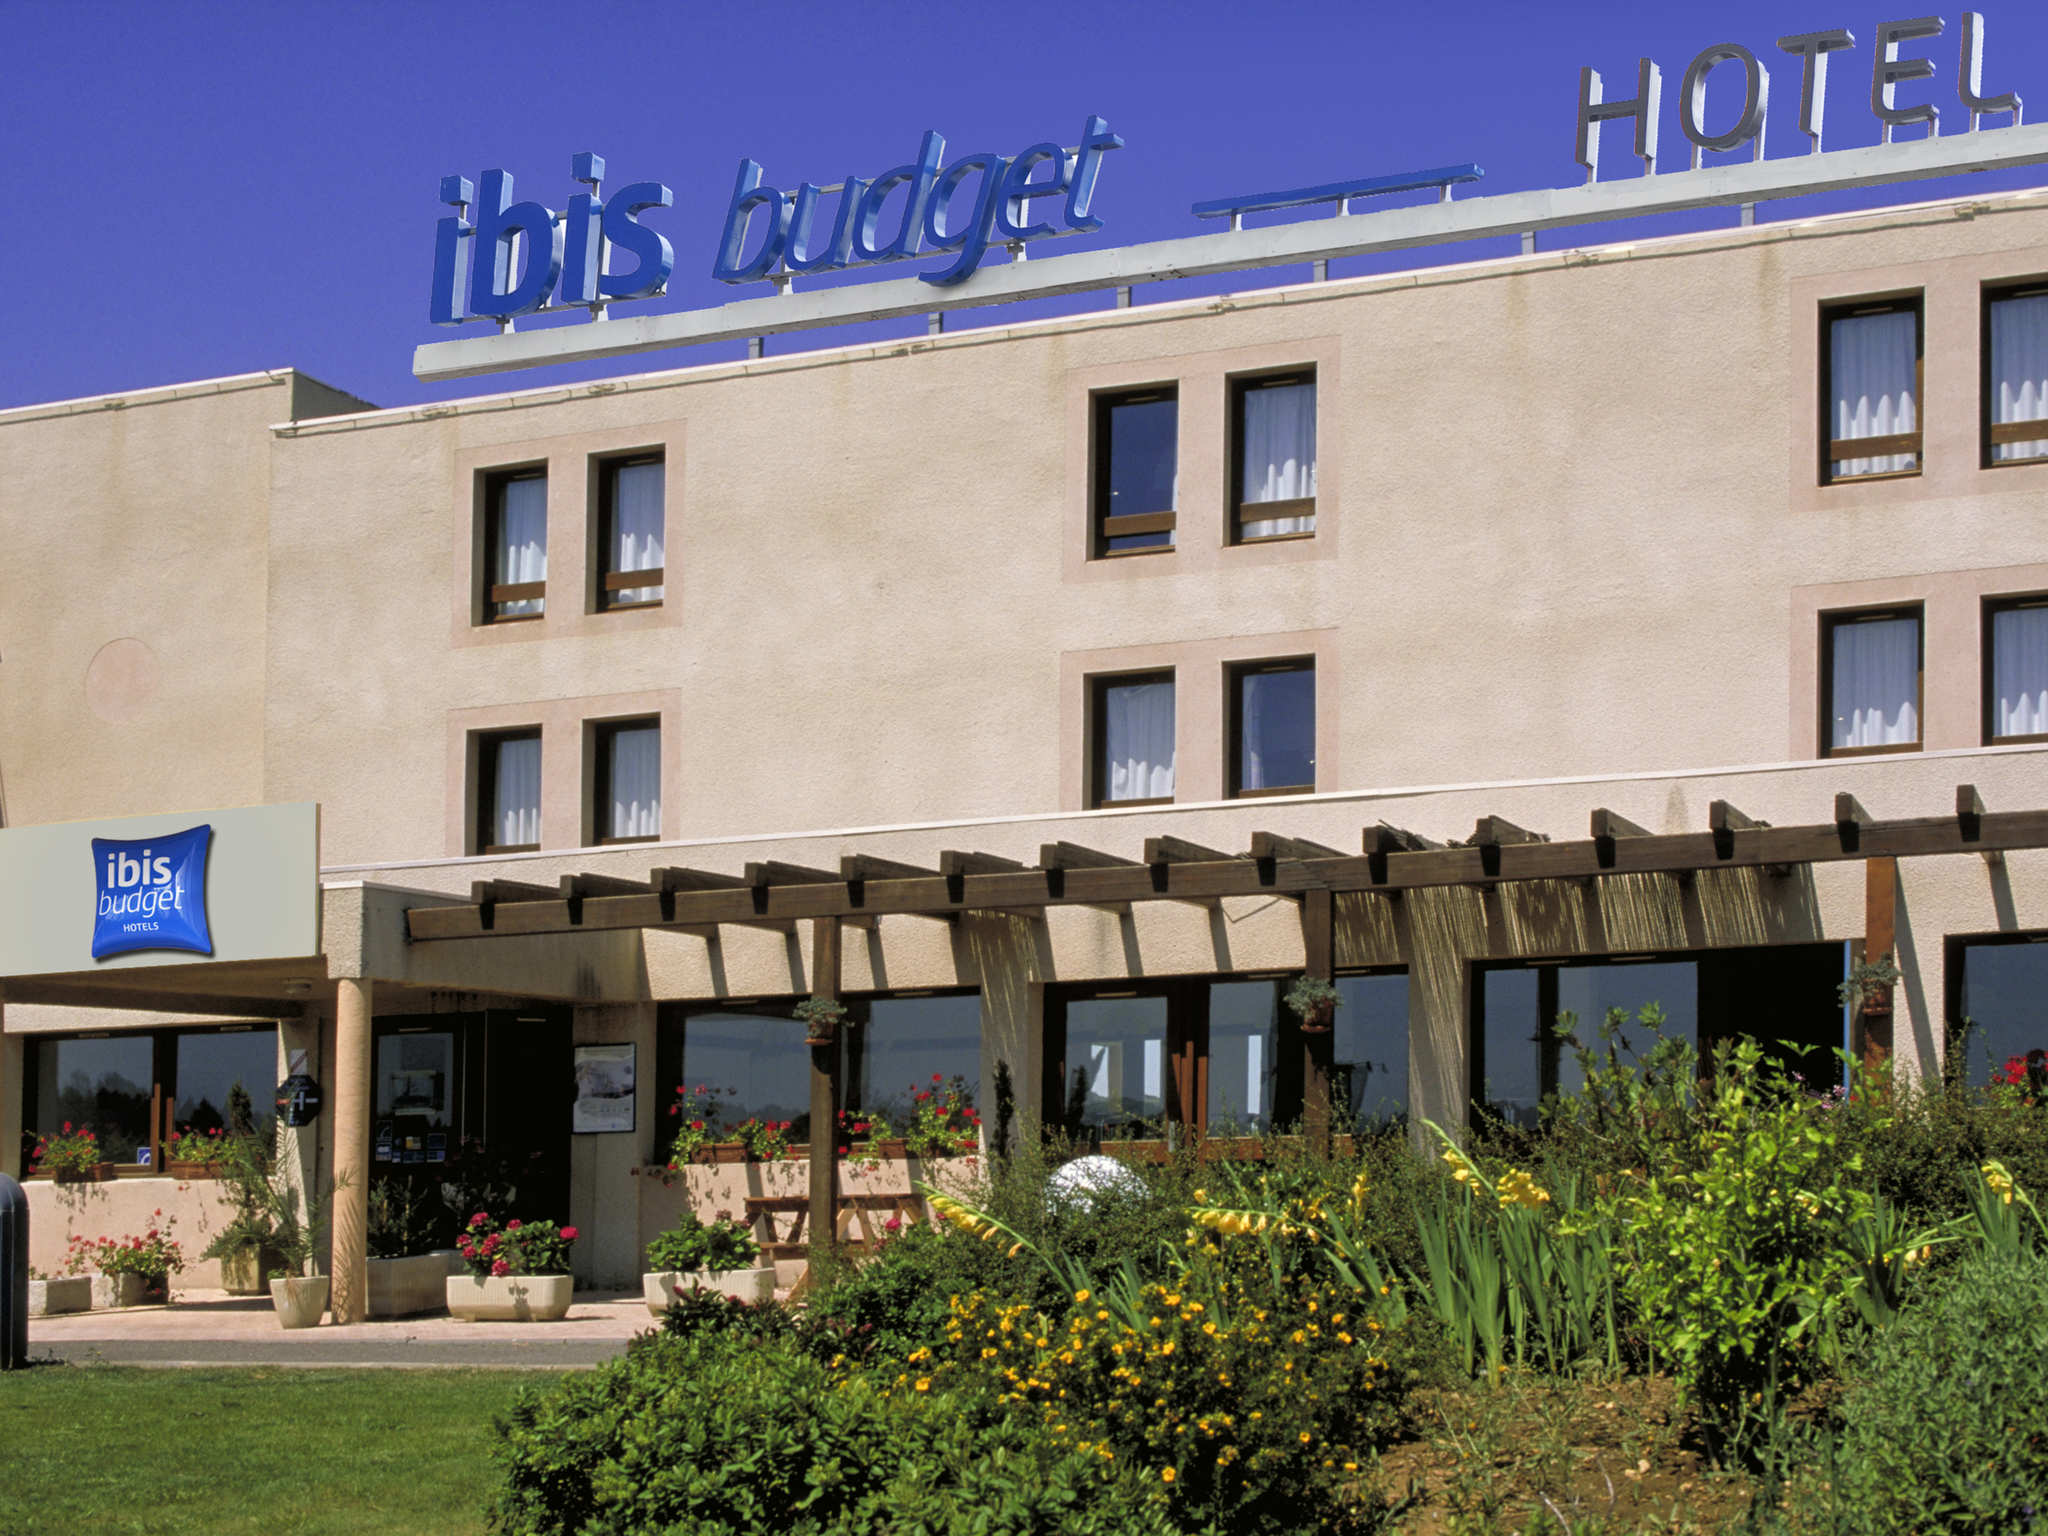 Hotel in narbonne ibis budget narbonne sud for Hotels narbonne